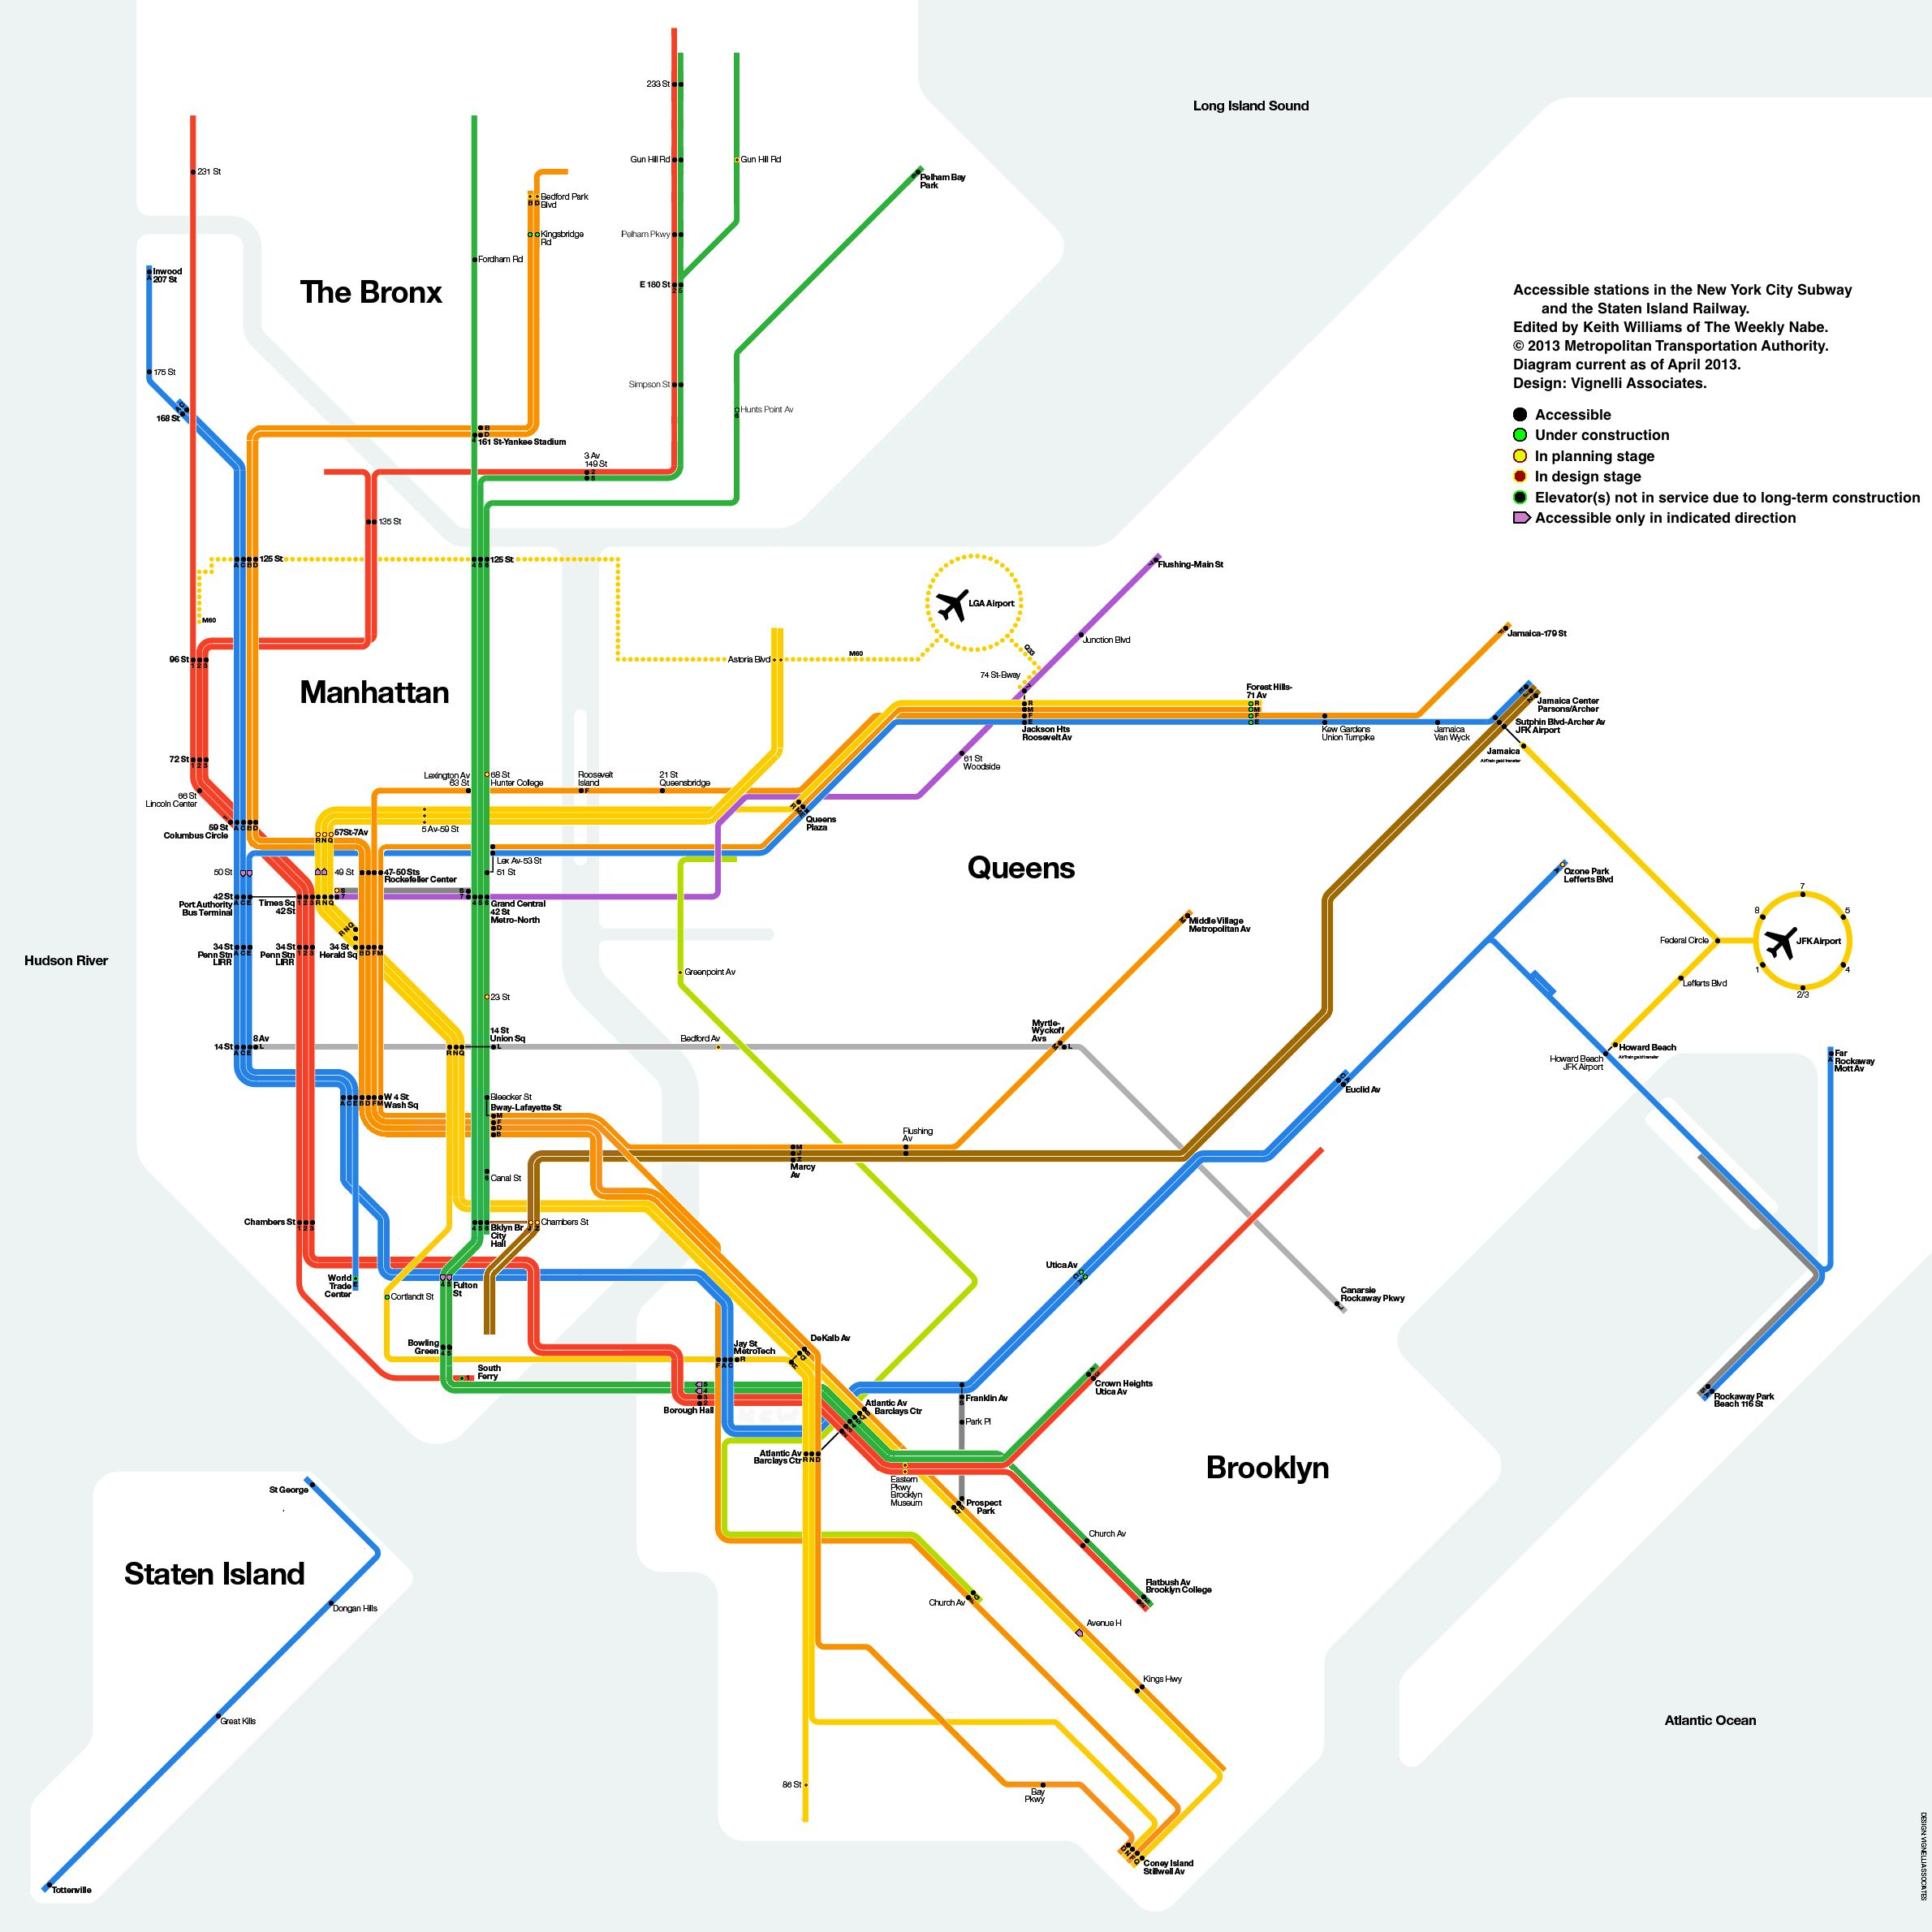 NYC Subway Map With Only Accessible Stations Shown Shows The - Nyc radar map